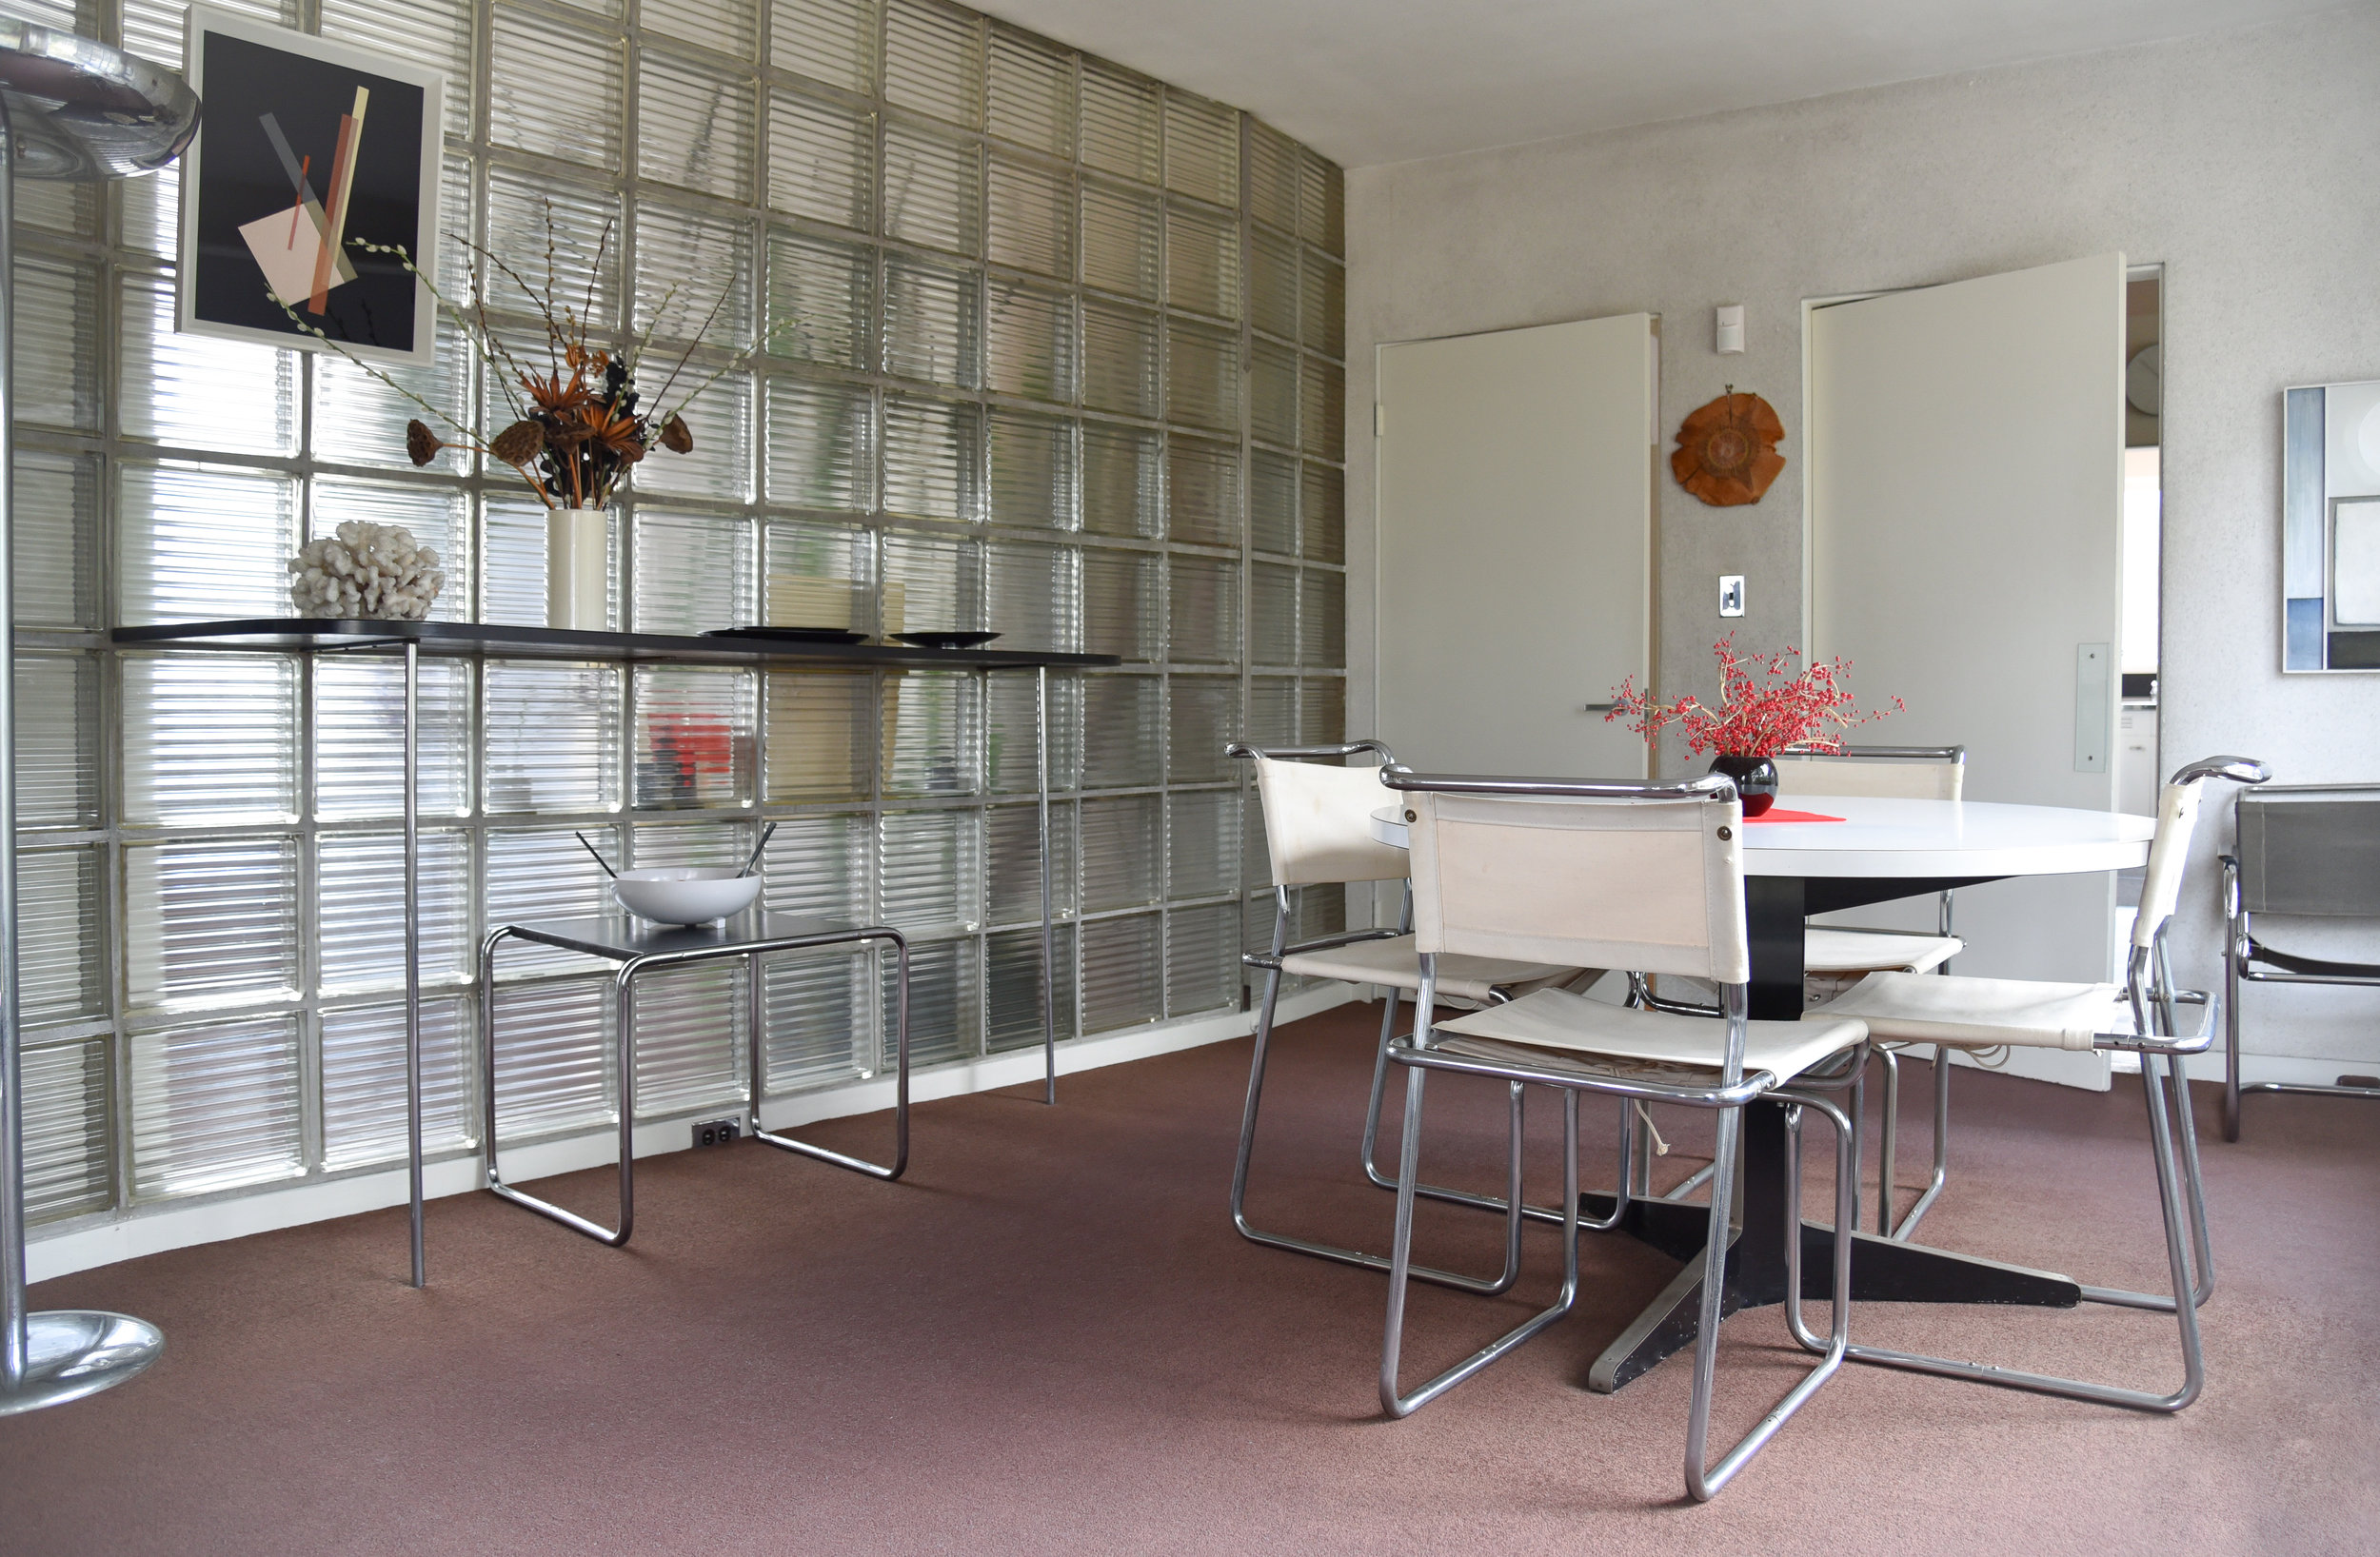 DINING with BAUHAUS STYLE